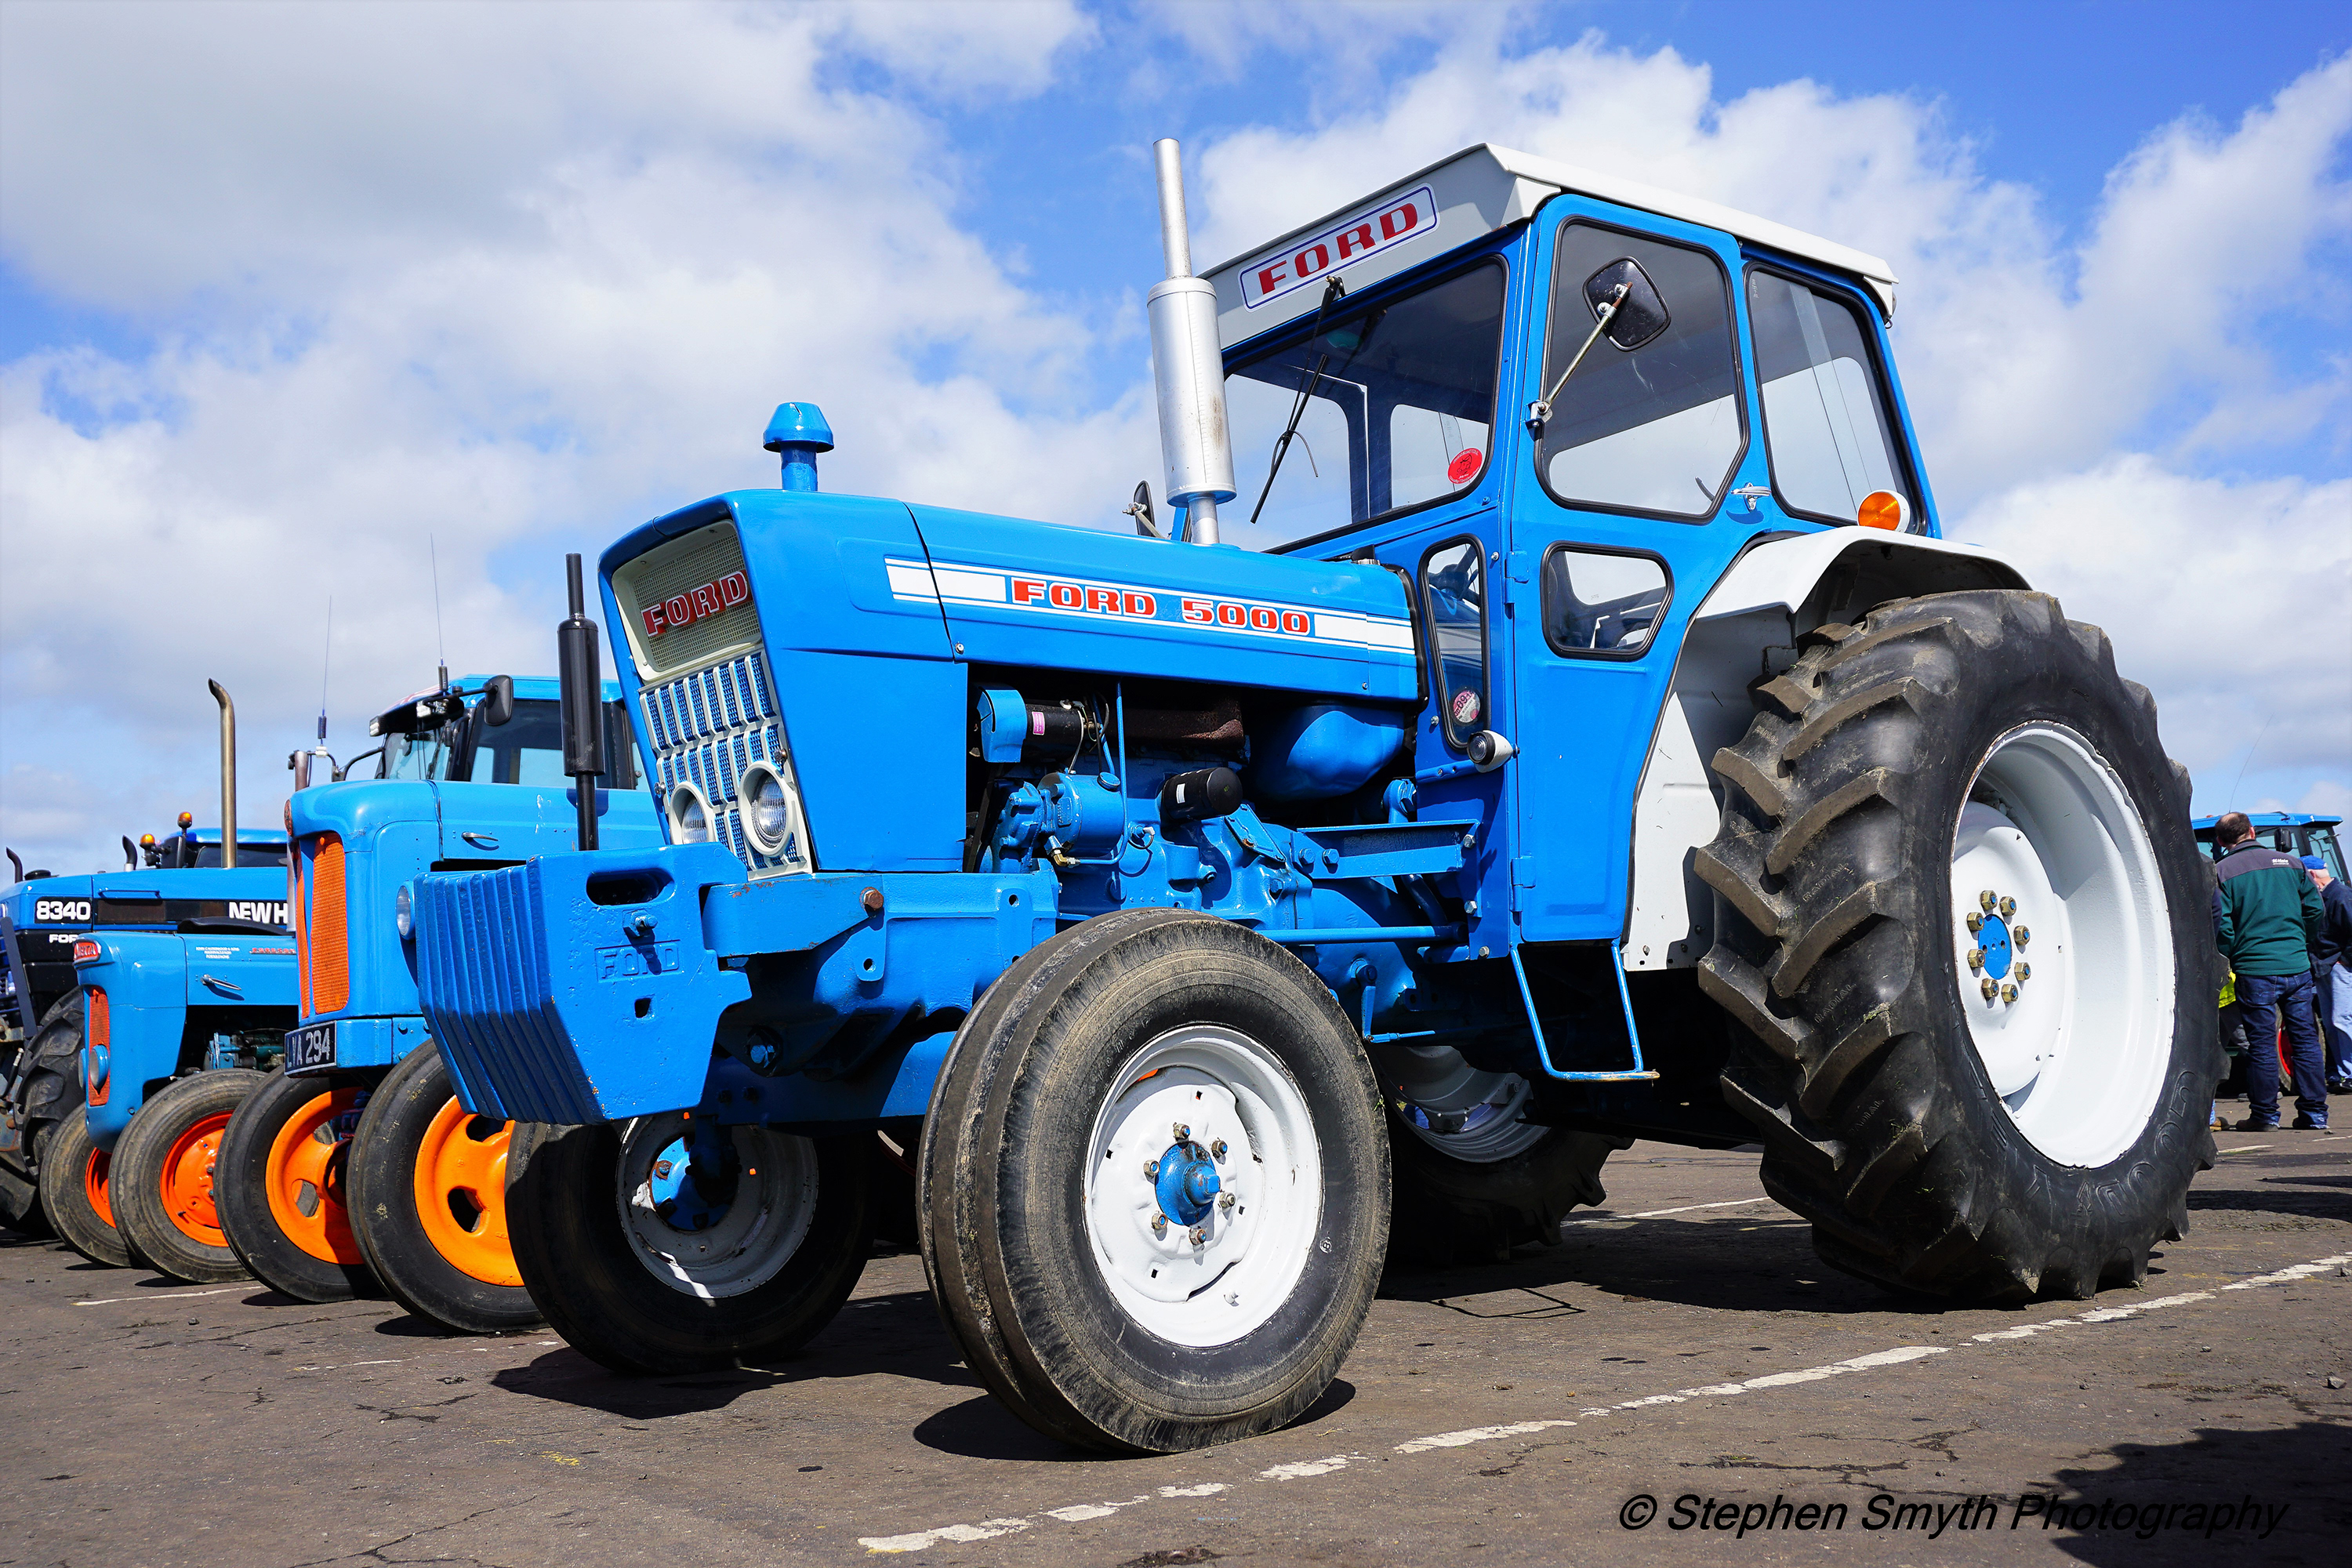 Big Ford Tractors : Pics machinery and childhood memories abound at huge ford